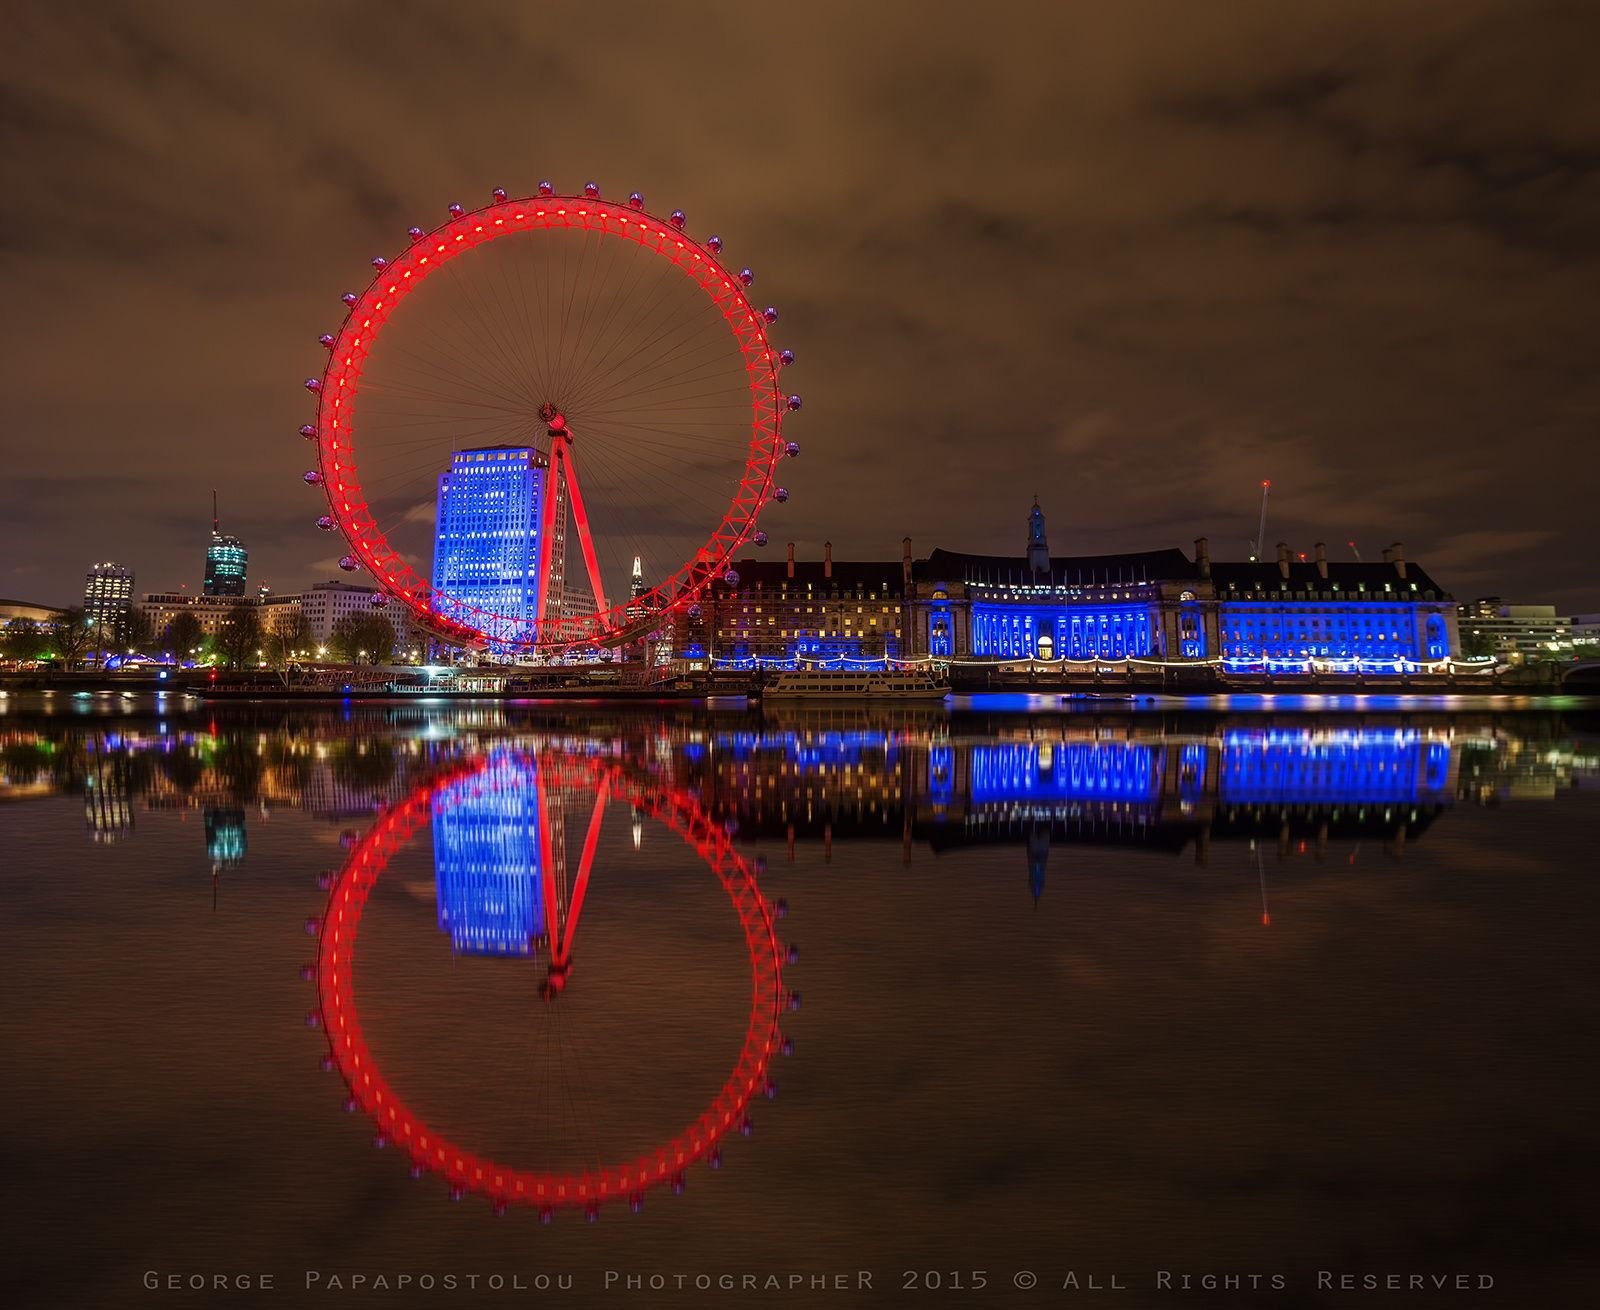 London eye by George Papapostolou on 500px